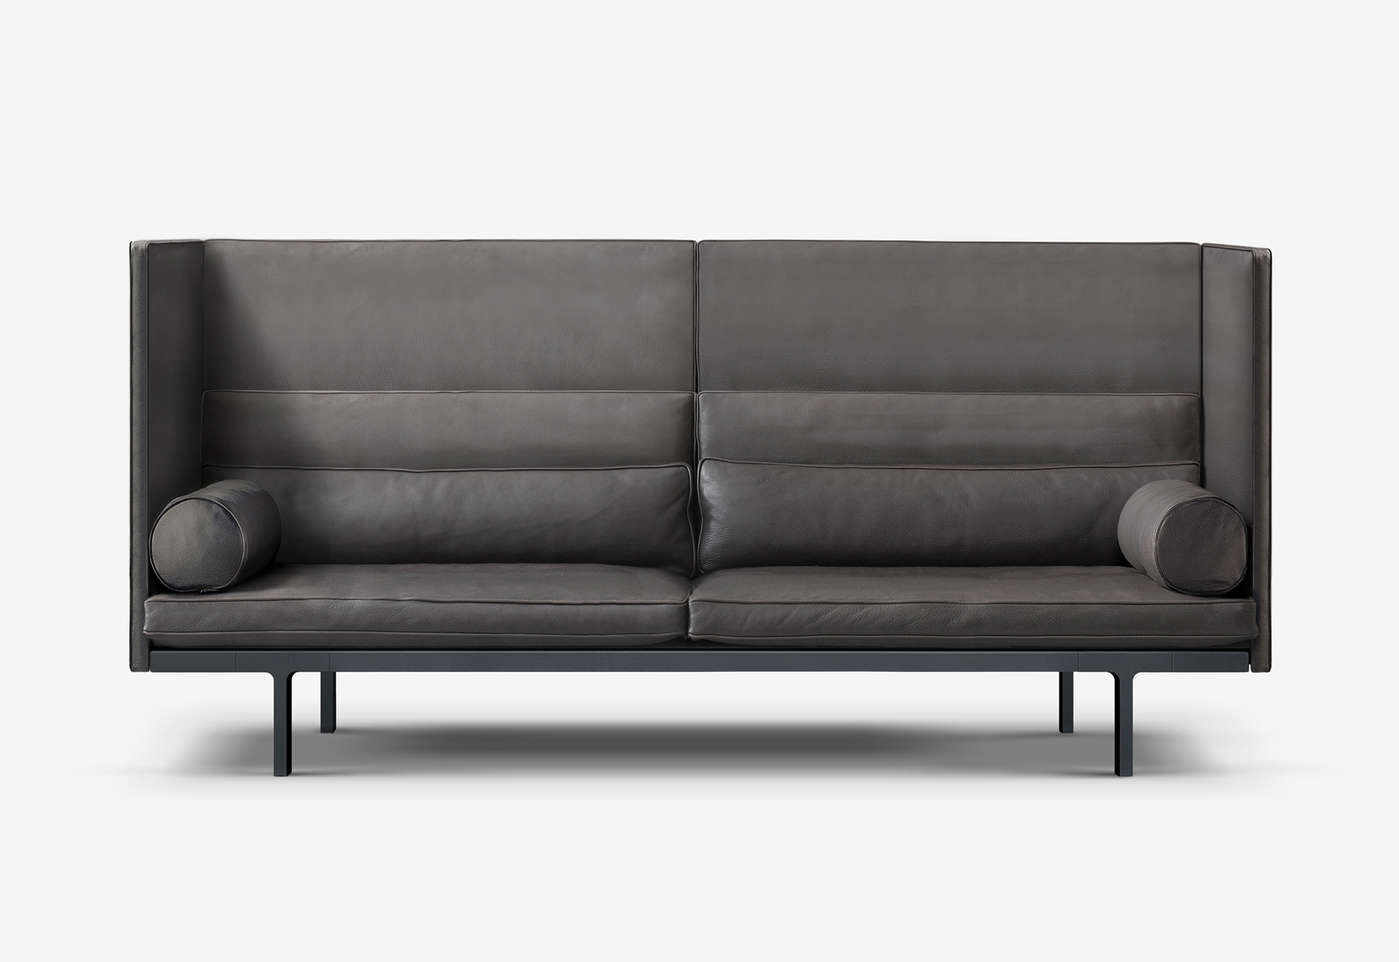 Archive Sofa - High Back from District